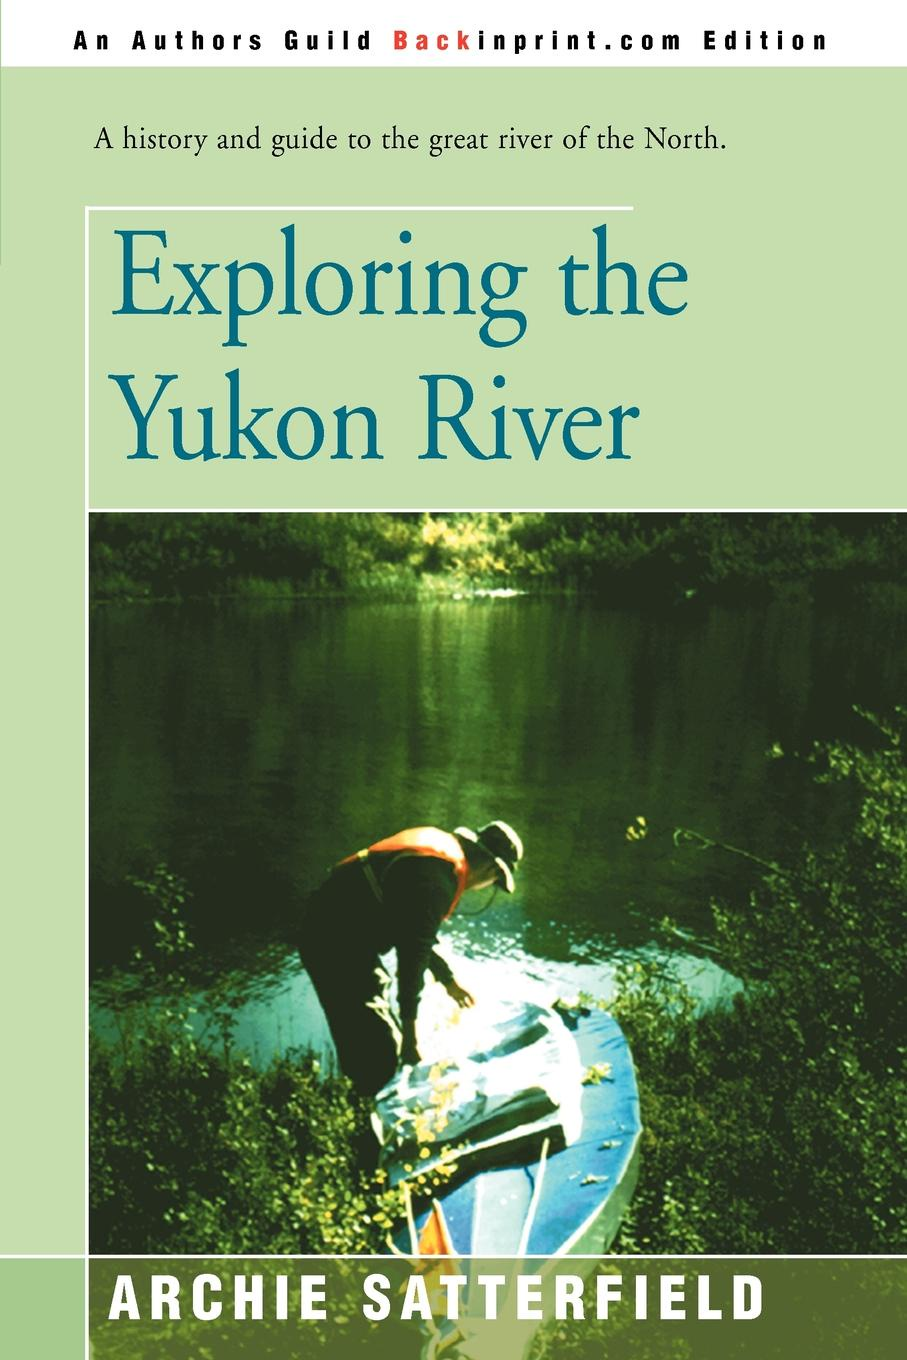 Archie Satterfield Exploring the Yukon River